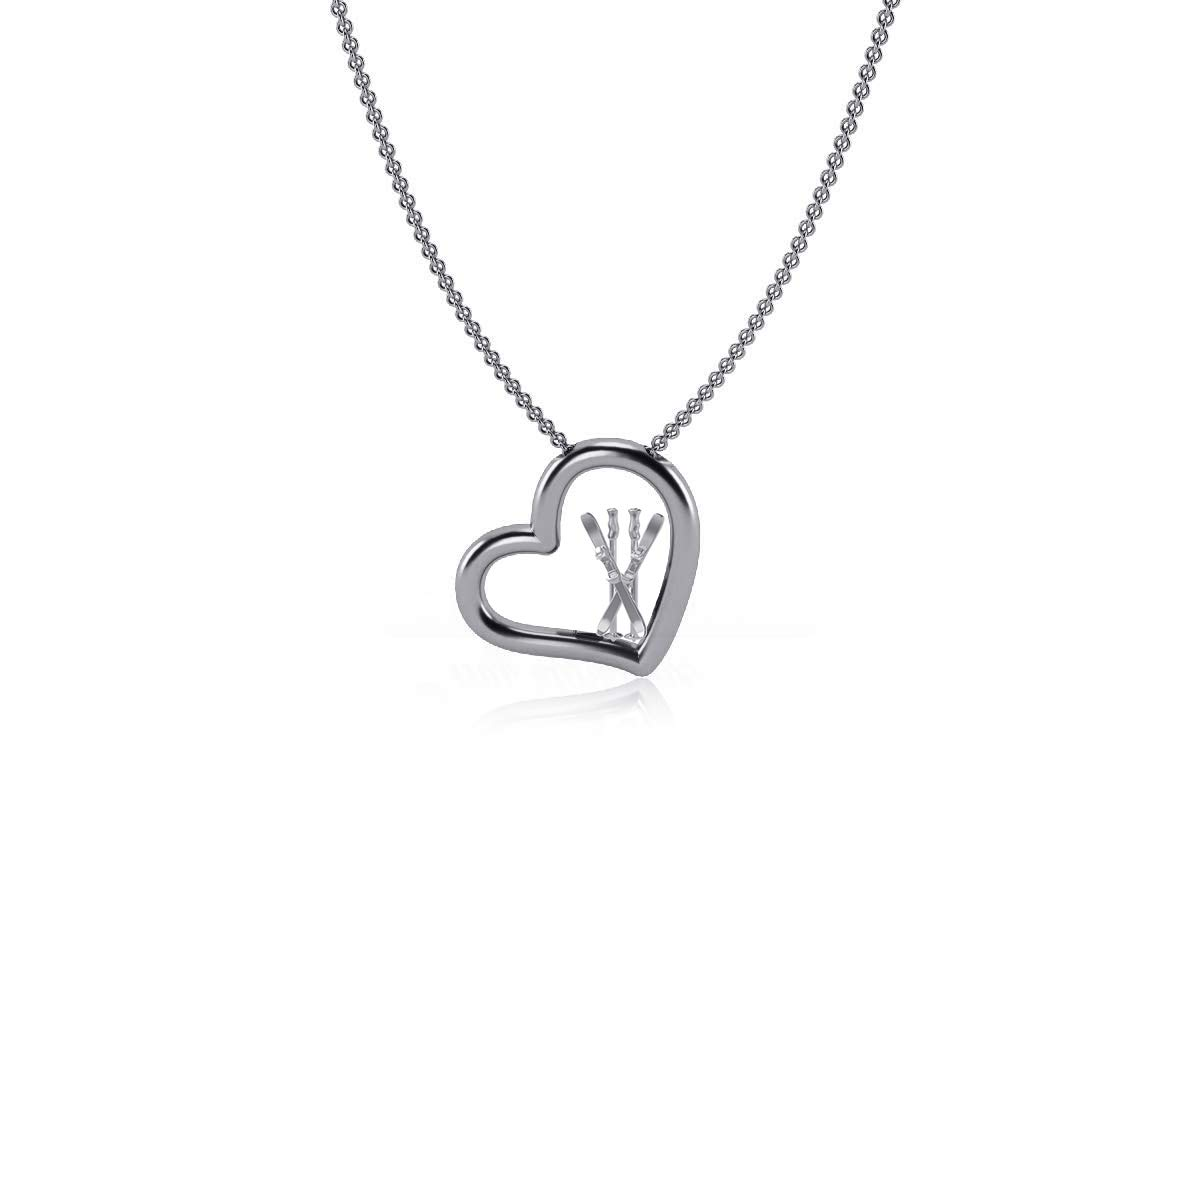 Dayna Designs Ski Heart Necklace Silver Sterling Silver Jewelry Small for Women//Girls